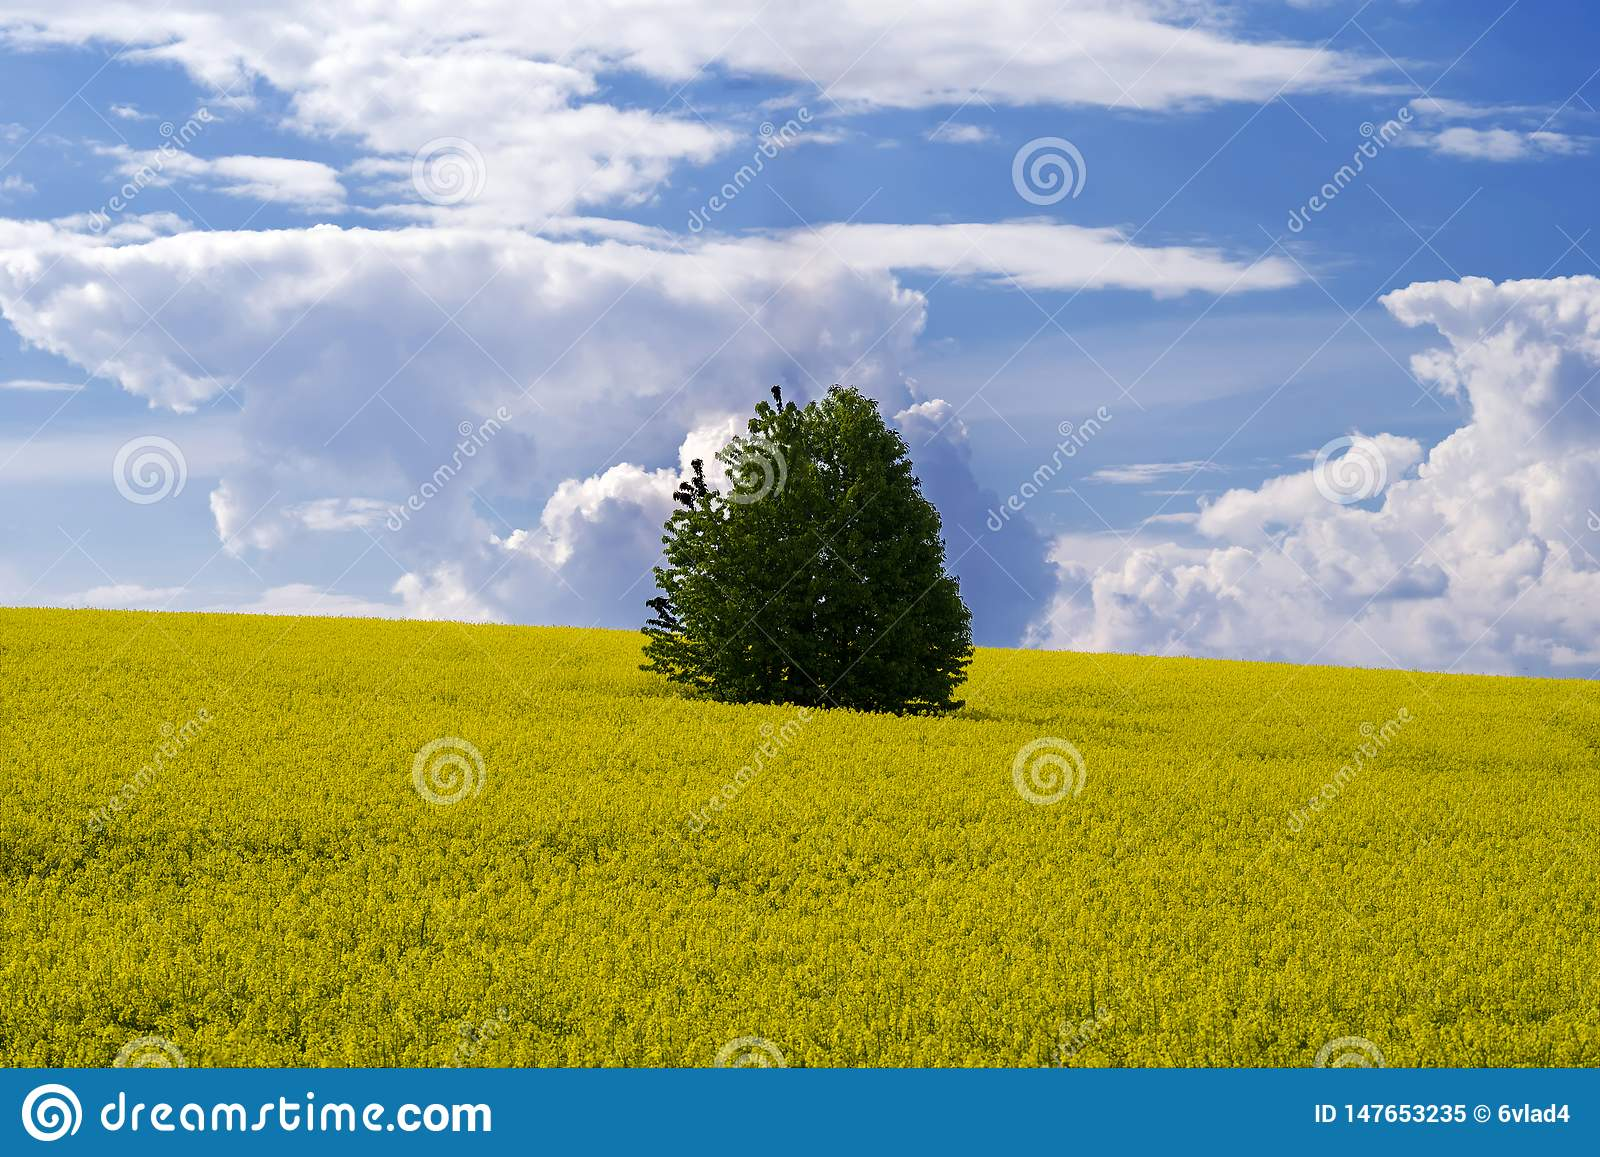 A lonely tree in the midst of a field of blooming canola against a blue sky with clouds